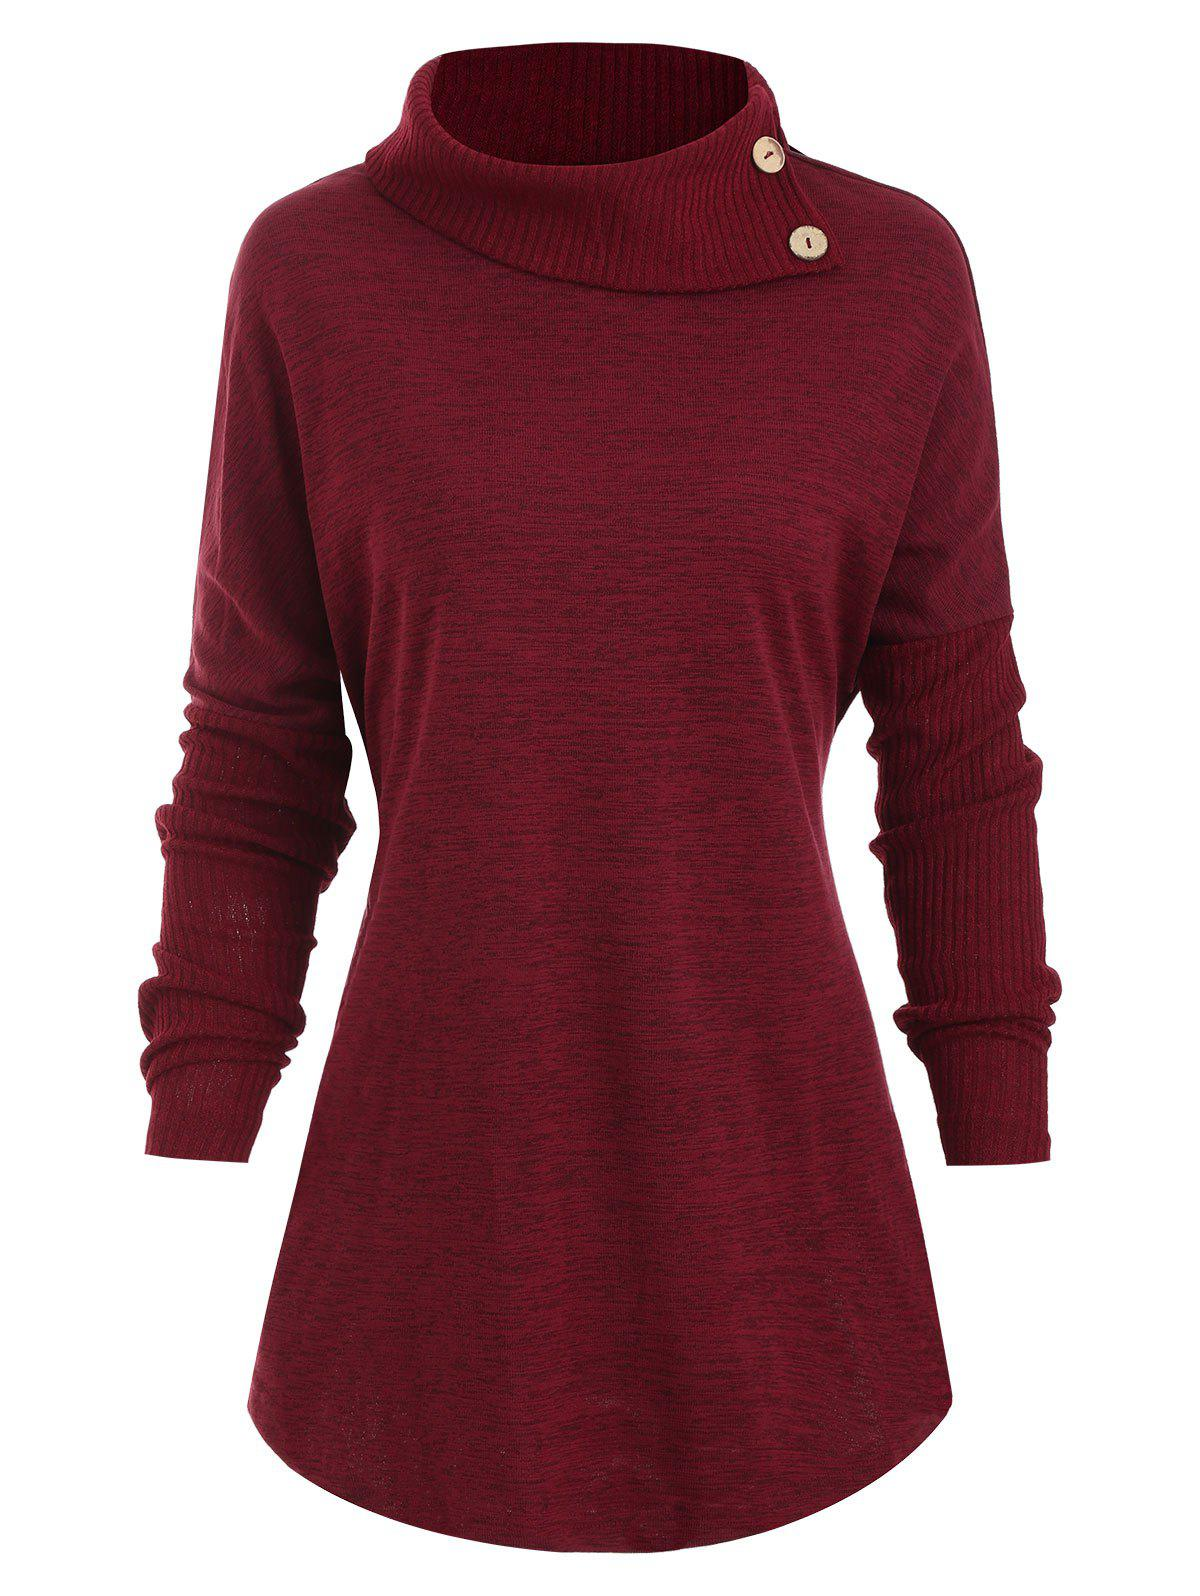 Buttons Turtleneck Heathered Curved Hem Tee - RED WINE M